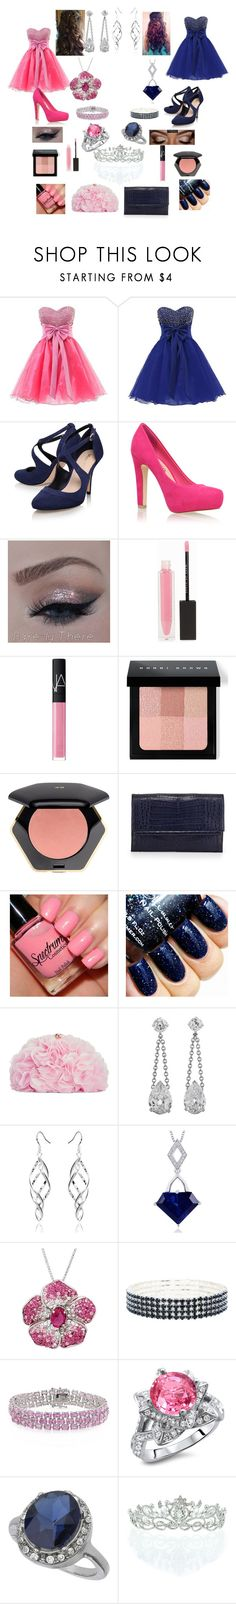 """""""Prom with bestie"""" by lovebeingwacky ❤ liked on Polyvore featuring Miss KG, MAKE UP STORE, NARS Cosmetics, Bobbi Brown Cosmetics, H&M, Nancy Gonzalez, Betsey Johnson, Oravo, Amanda Rose Collection and M&Co"""